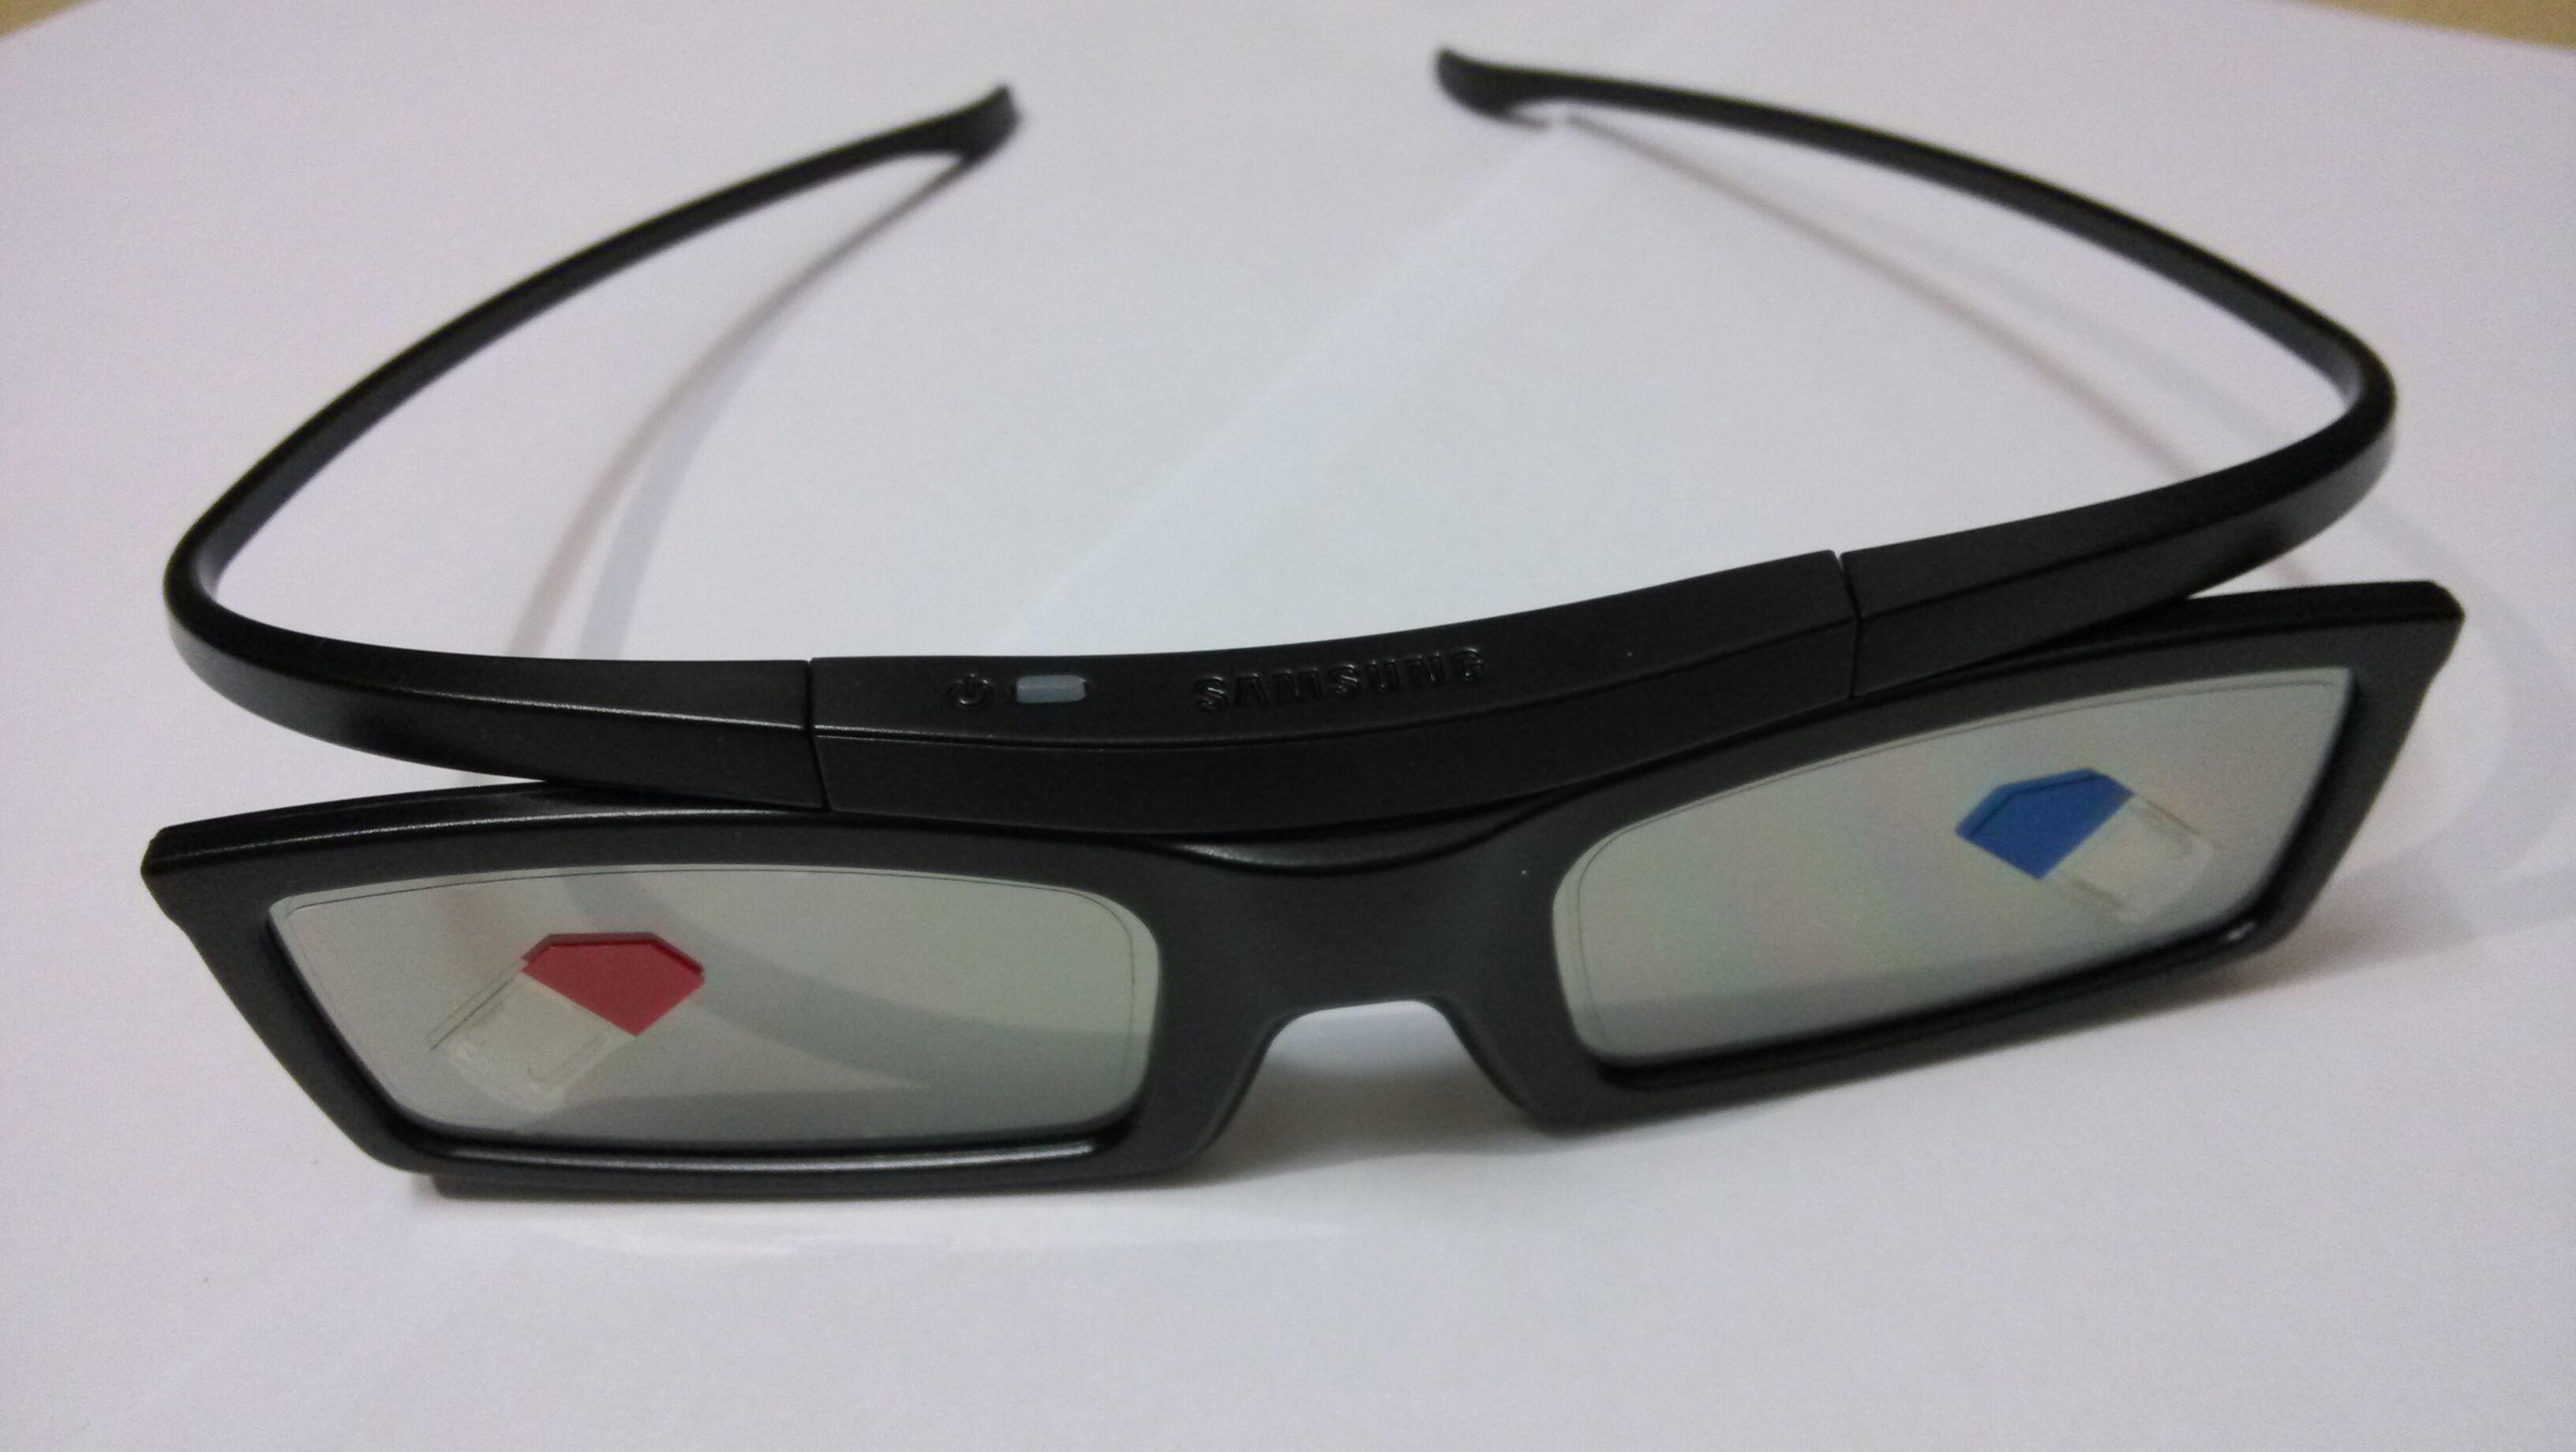 sony 3d glasses. brand new black replacement ssg-5100gb tdg-bt500a/bt400a bluetooth shutter 3d glasses for samsung sony smart tv without retail box 3d